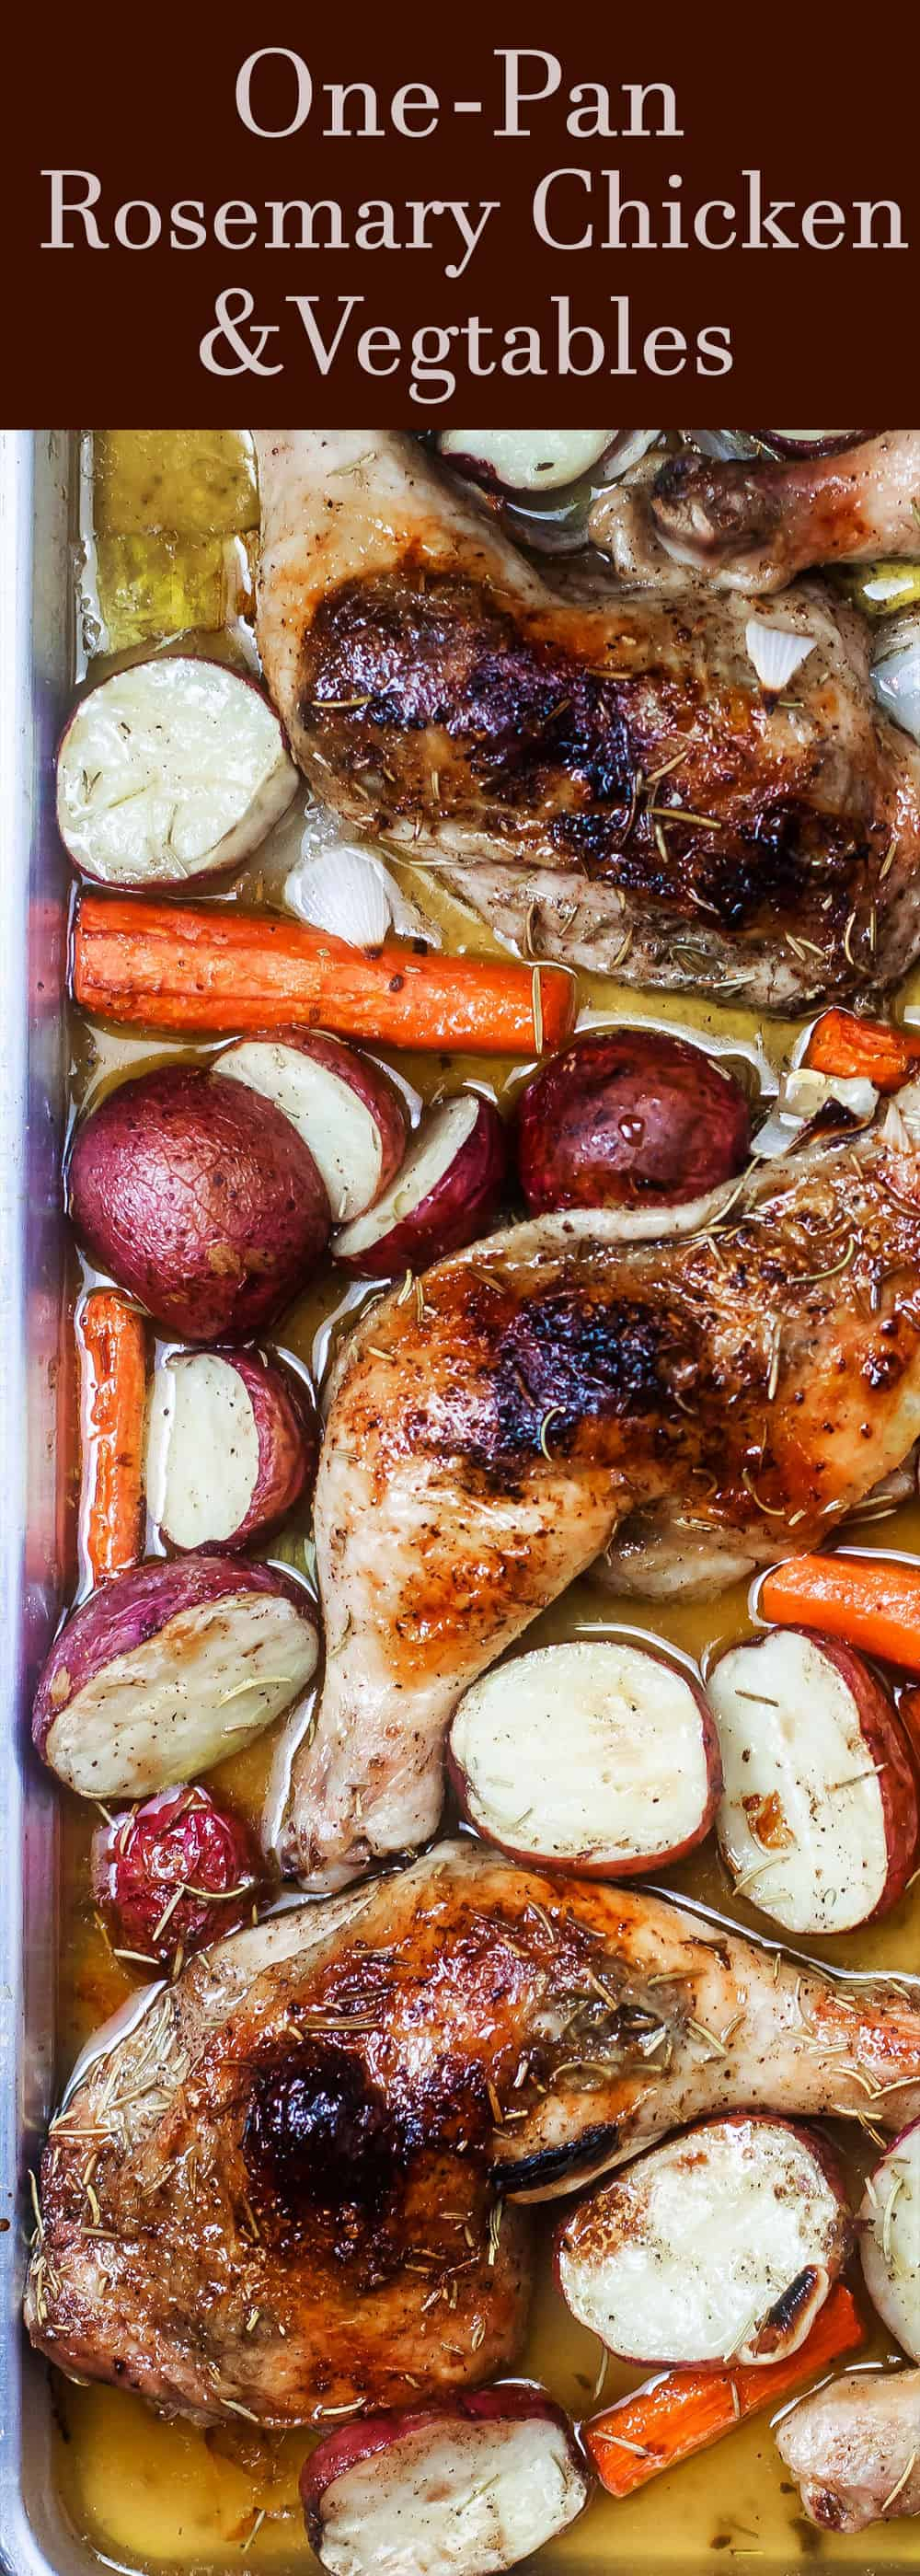 Rosemary Roasted Chicken Recipe with Vegetables | The Mediterranean Dish. A simple and satisfying one-pan roasted chicken recipe packed with flavor from Mediterranean spices including rosemary and a generous amount of lemon juice and olive oil. A healthy and cozy fuss-free dinner! Get the recipe on TheMediterraneanDish.com #mediterraneanrecipe #mediterraneandiet #sheetpan #chickendinner